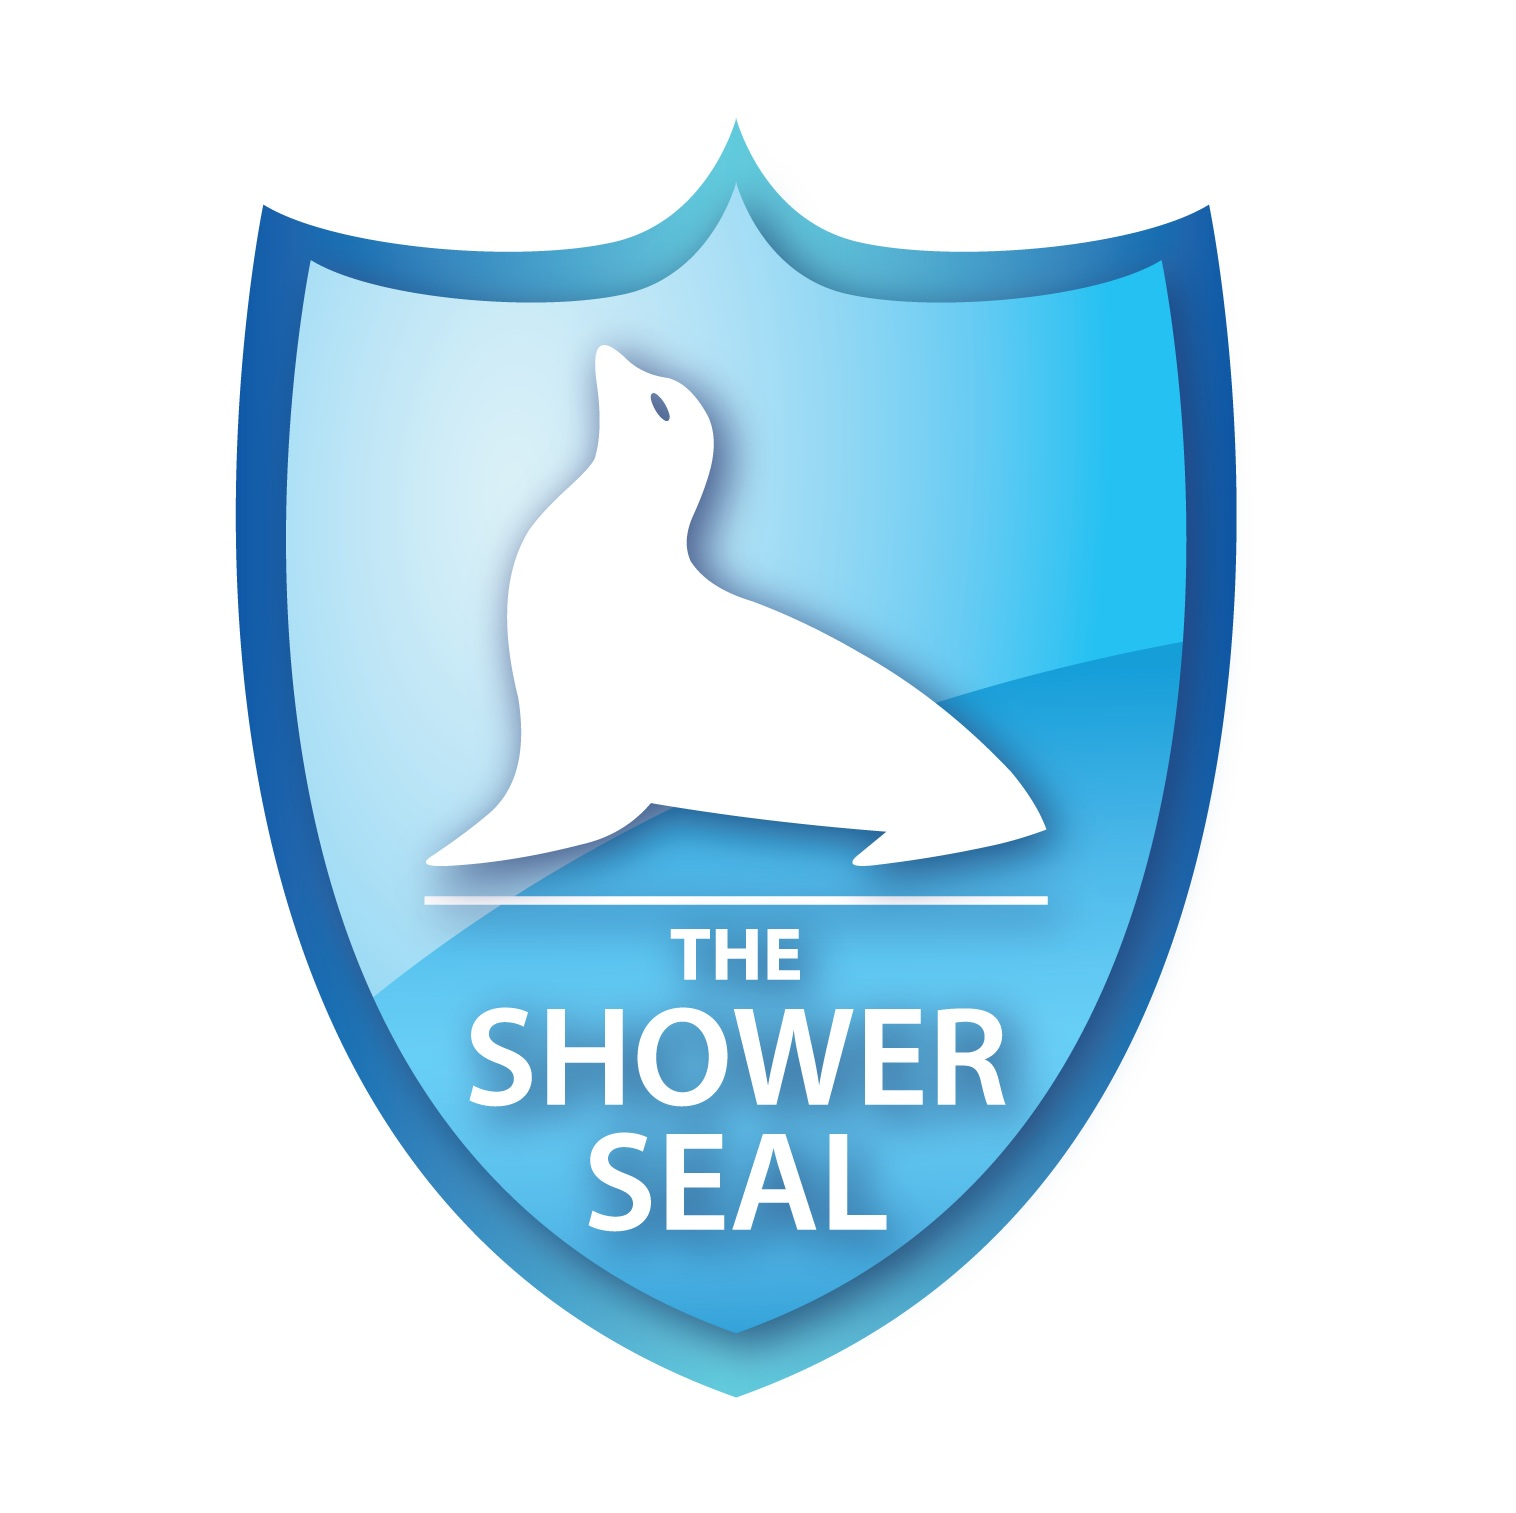 The Shower Seal - www.theshowerseal.co.uk